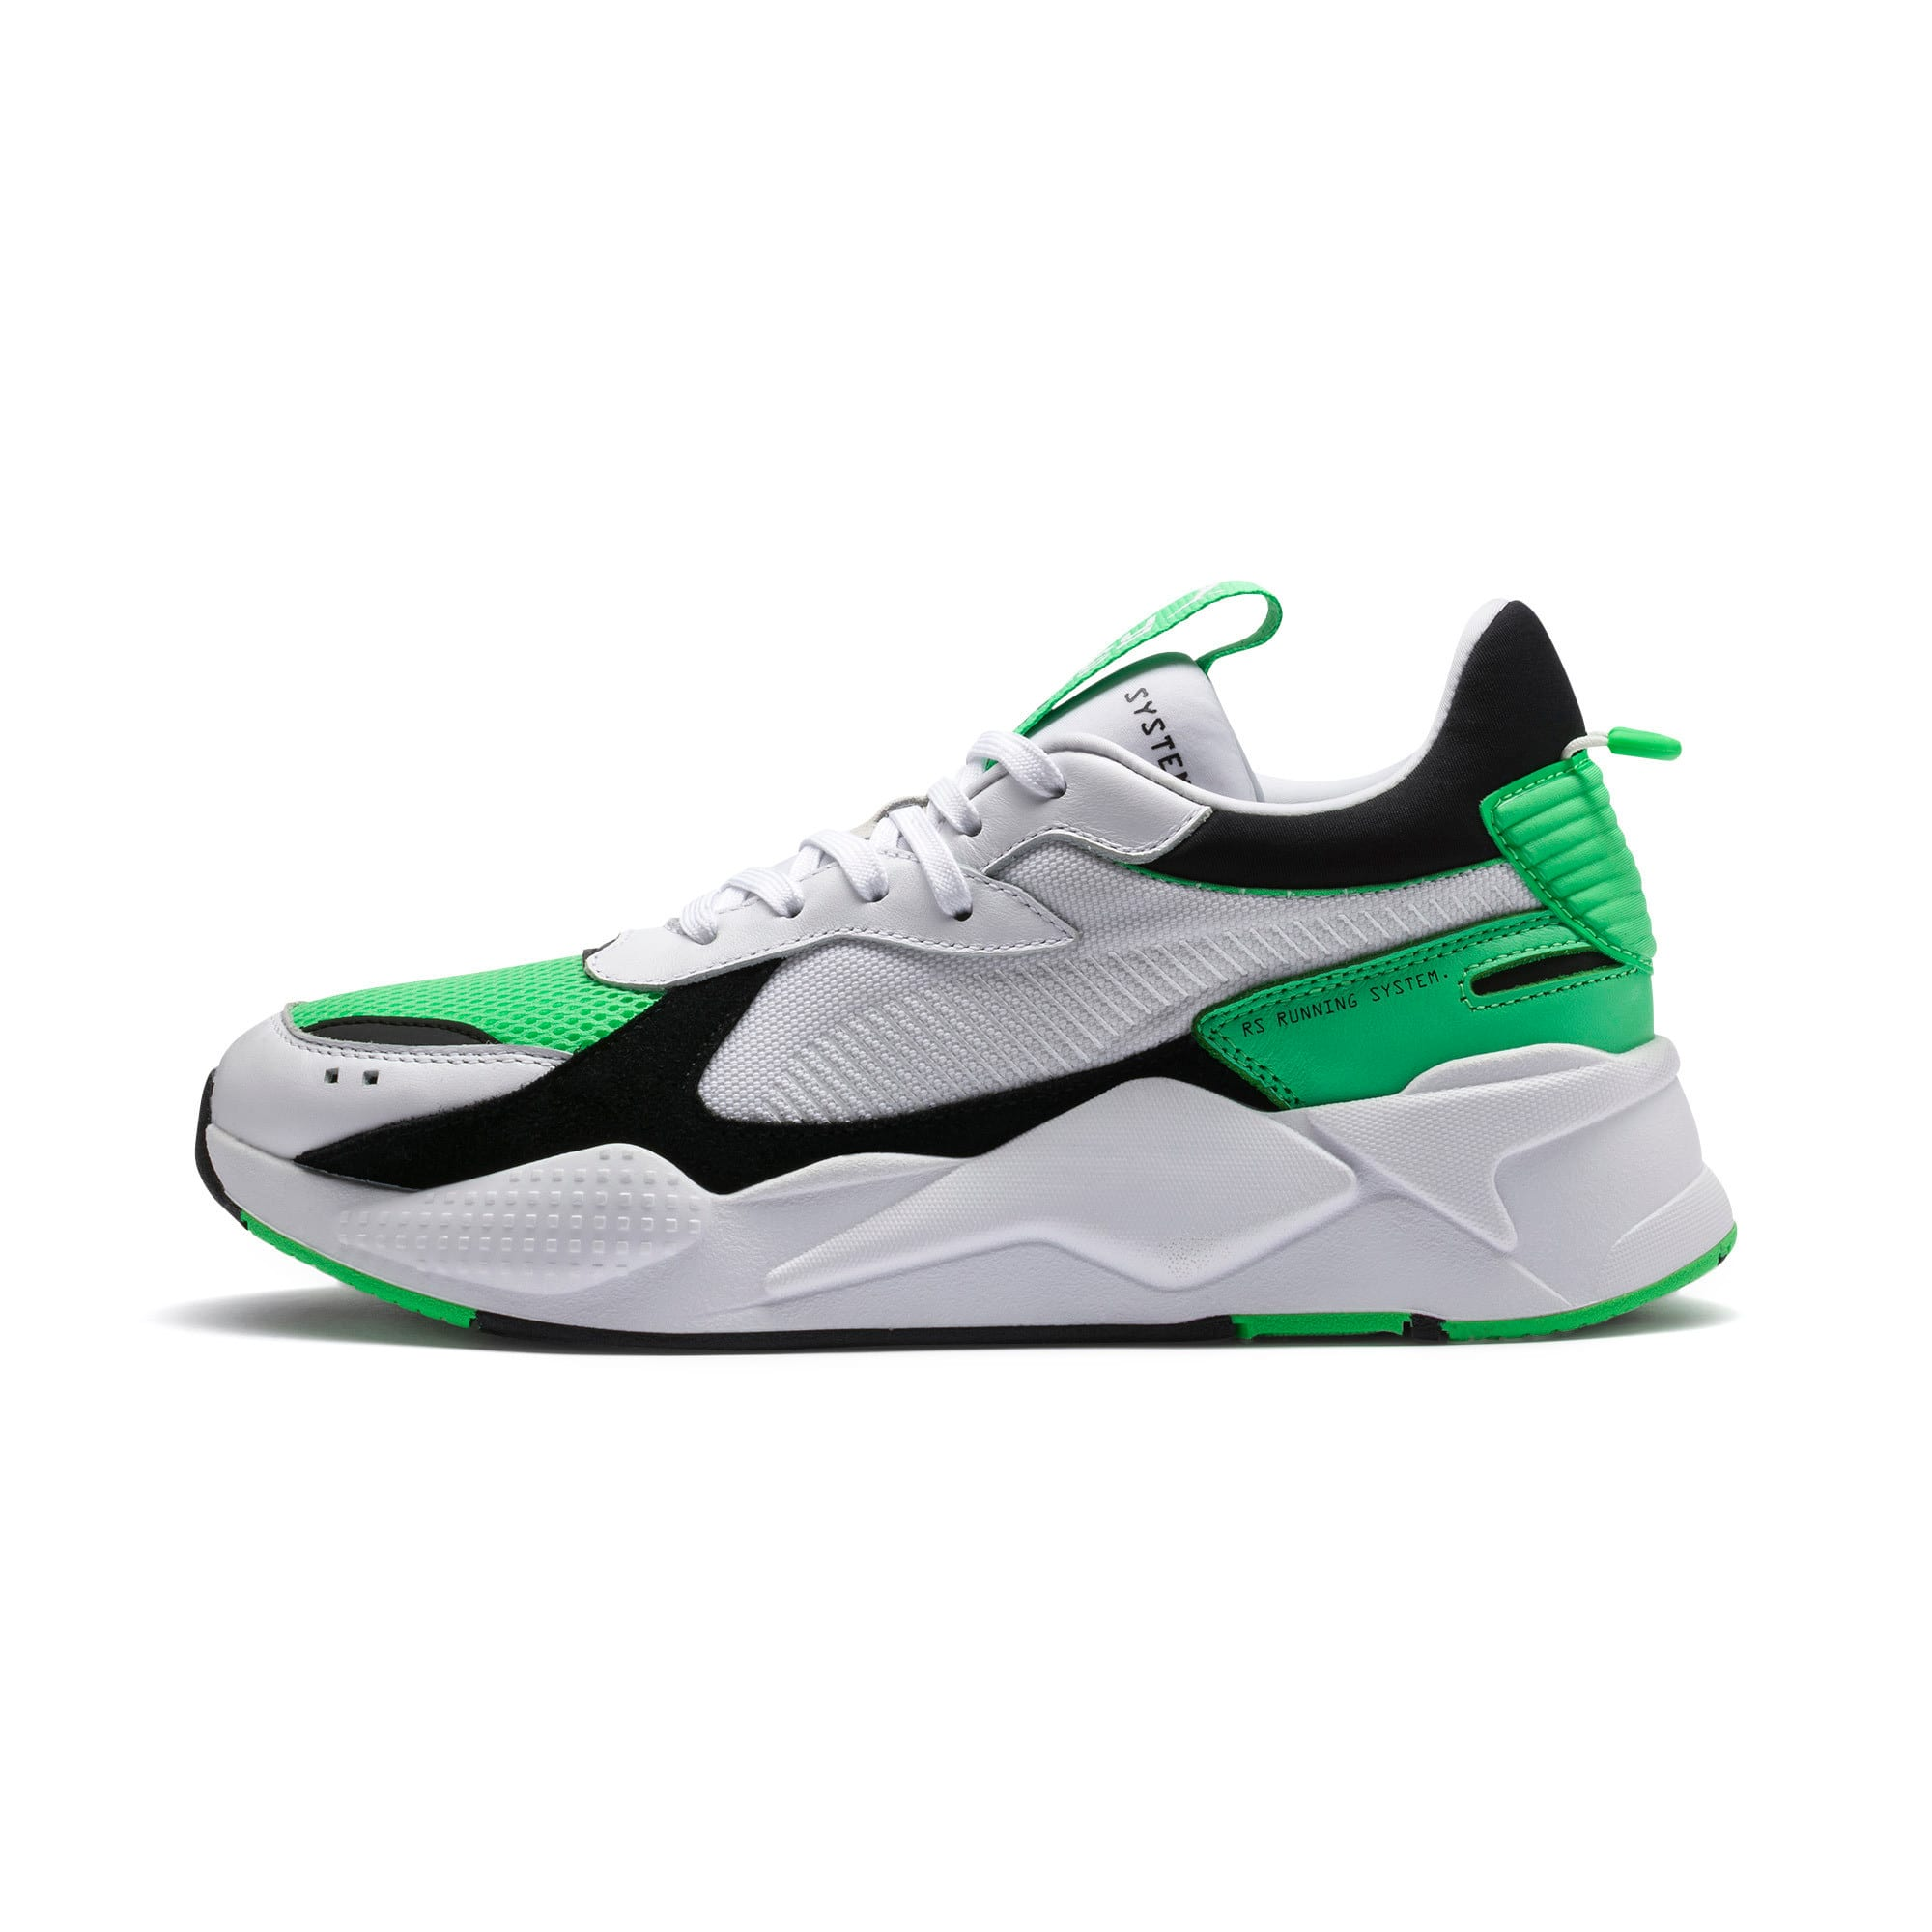 Thumbnail 1 of RS-X Reinvention Trainers, Puma White-Irish Green, medium